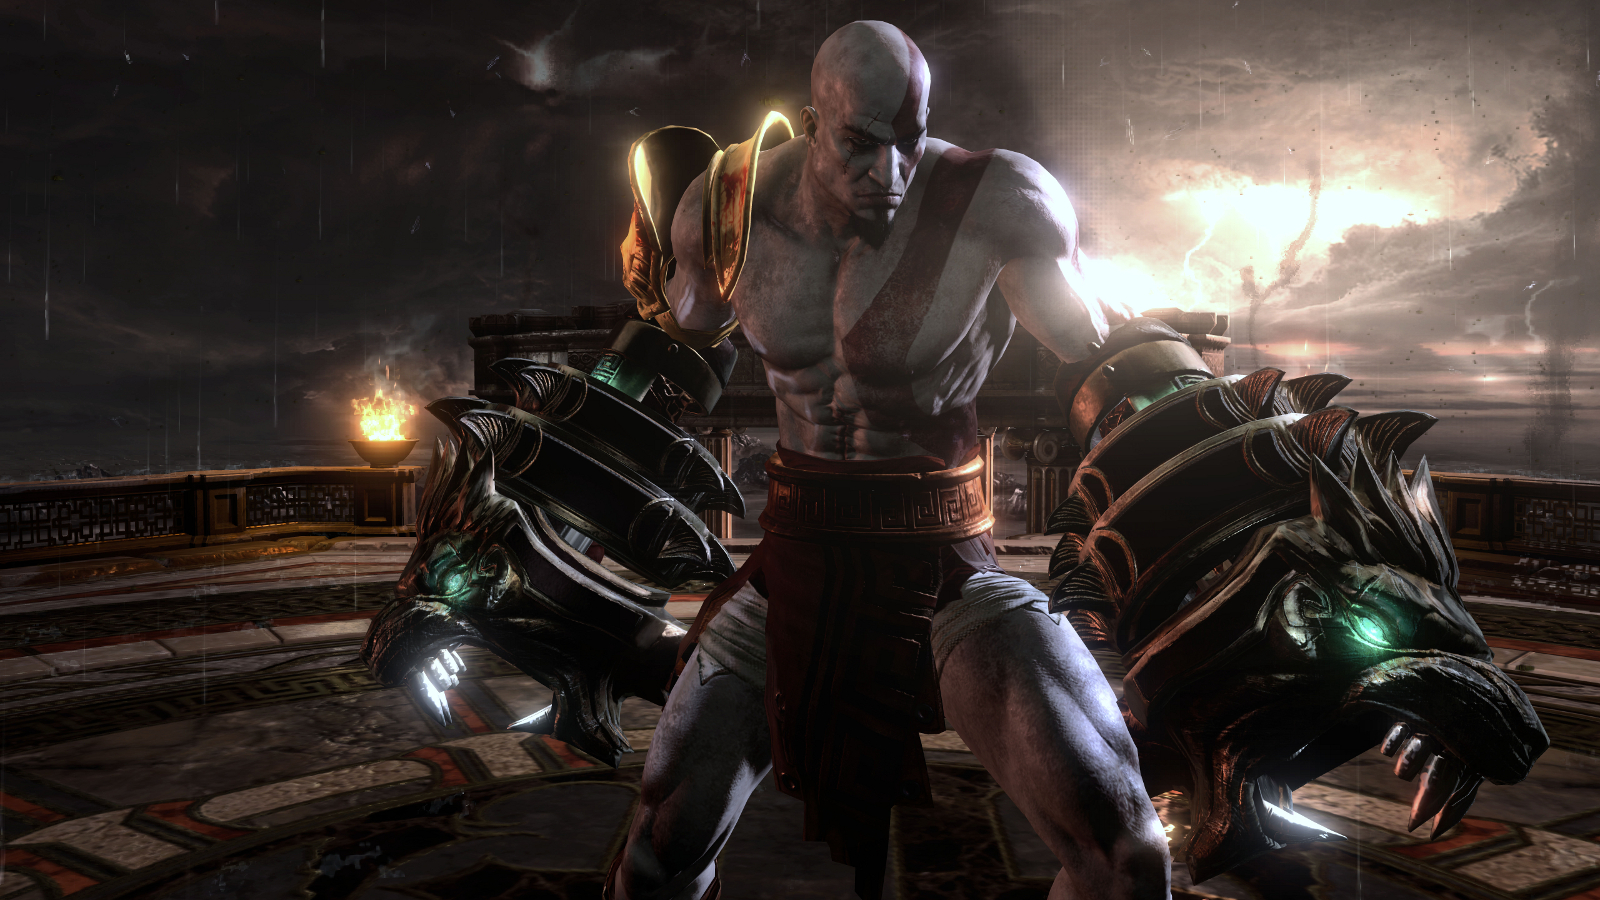 God of War After 10 Years: The Decline and Fall of Kratos | USgamer